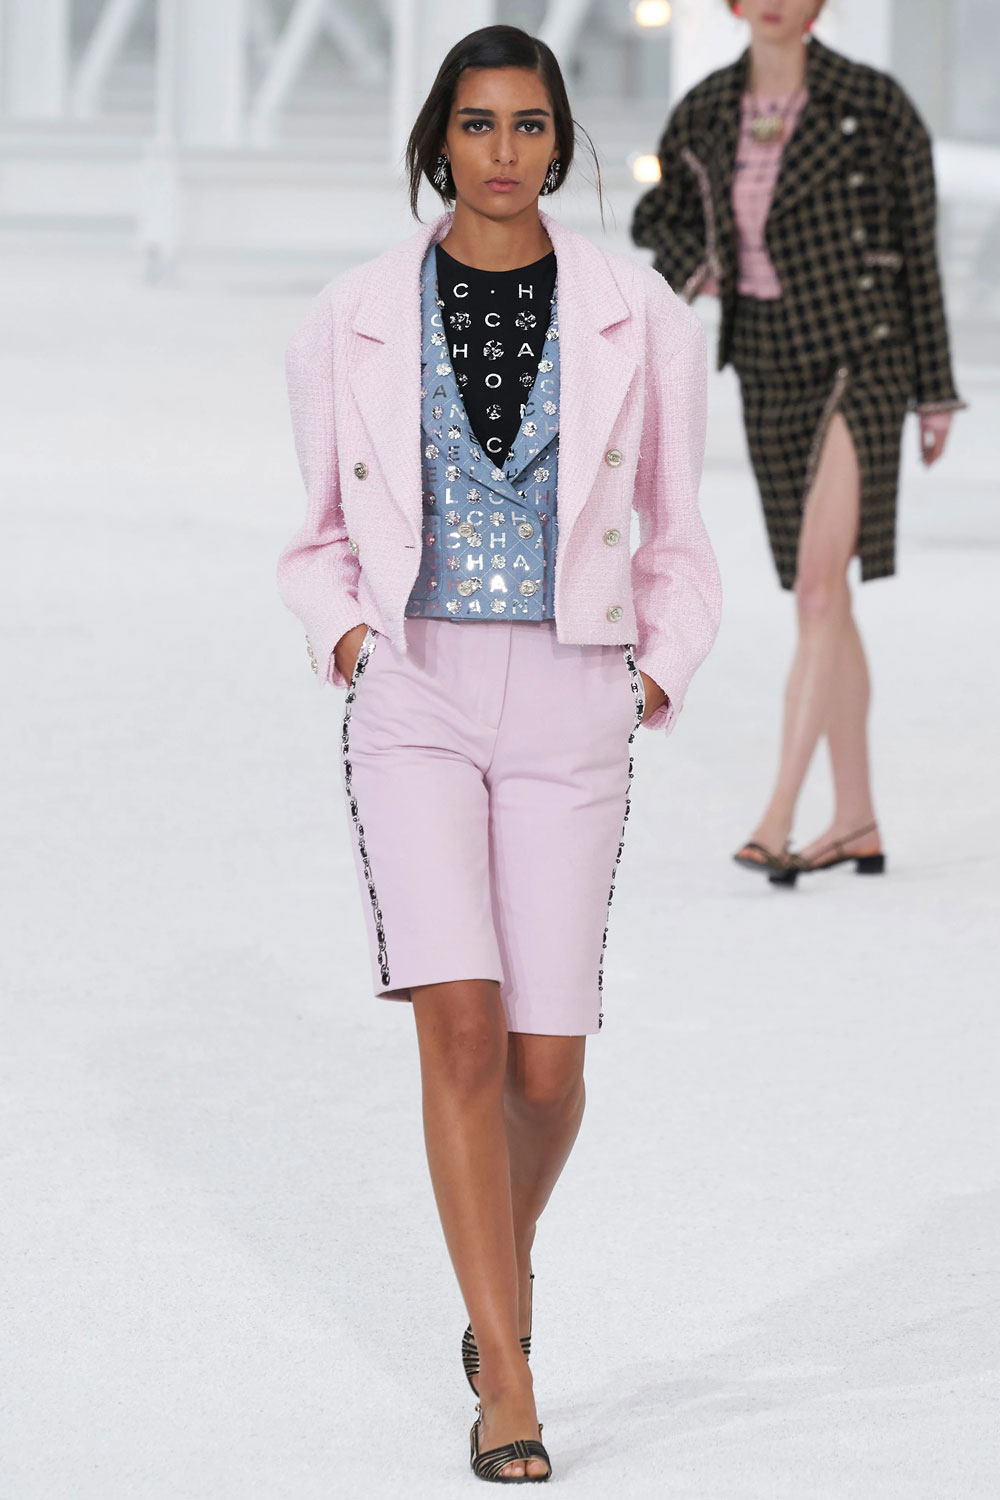 fashion_week_spring_2021_ready-to-wear_chanel_6